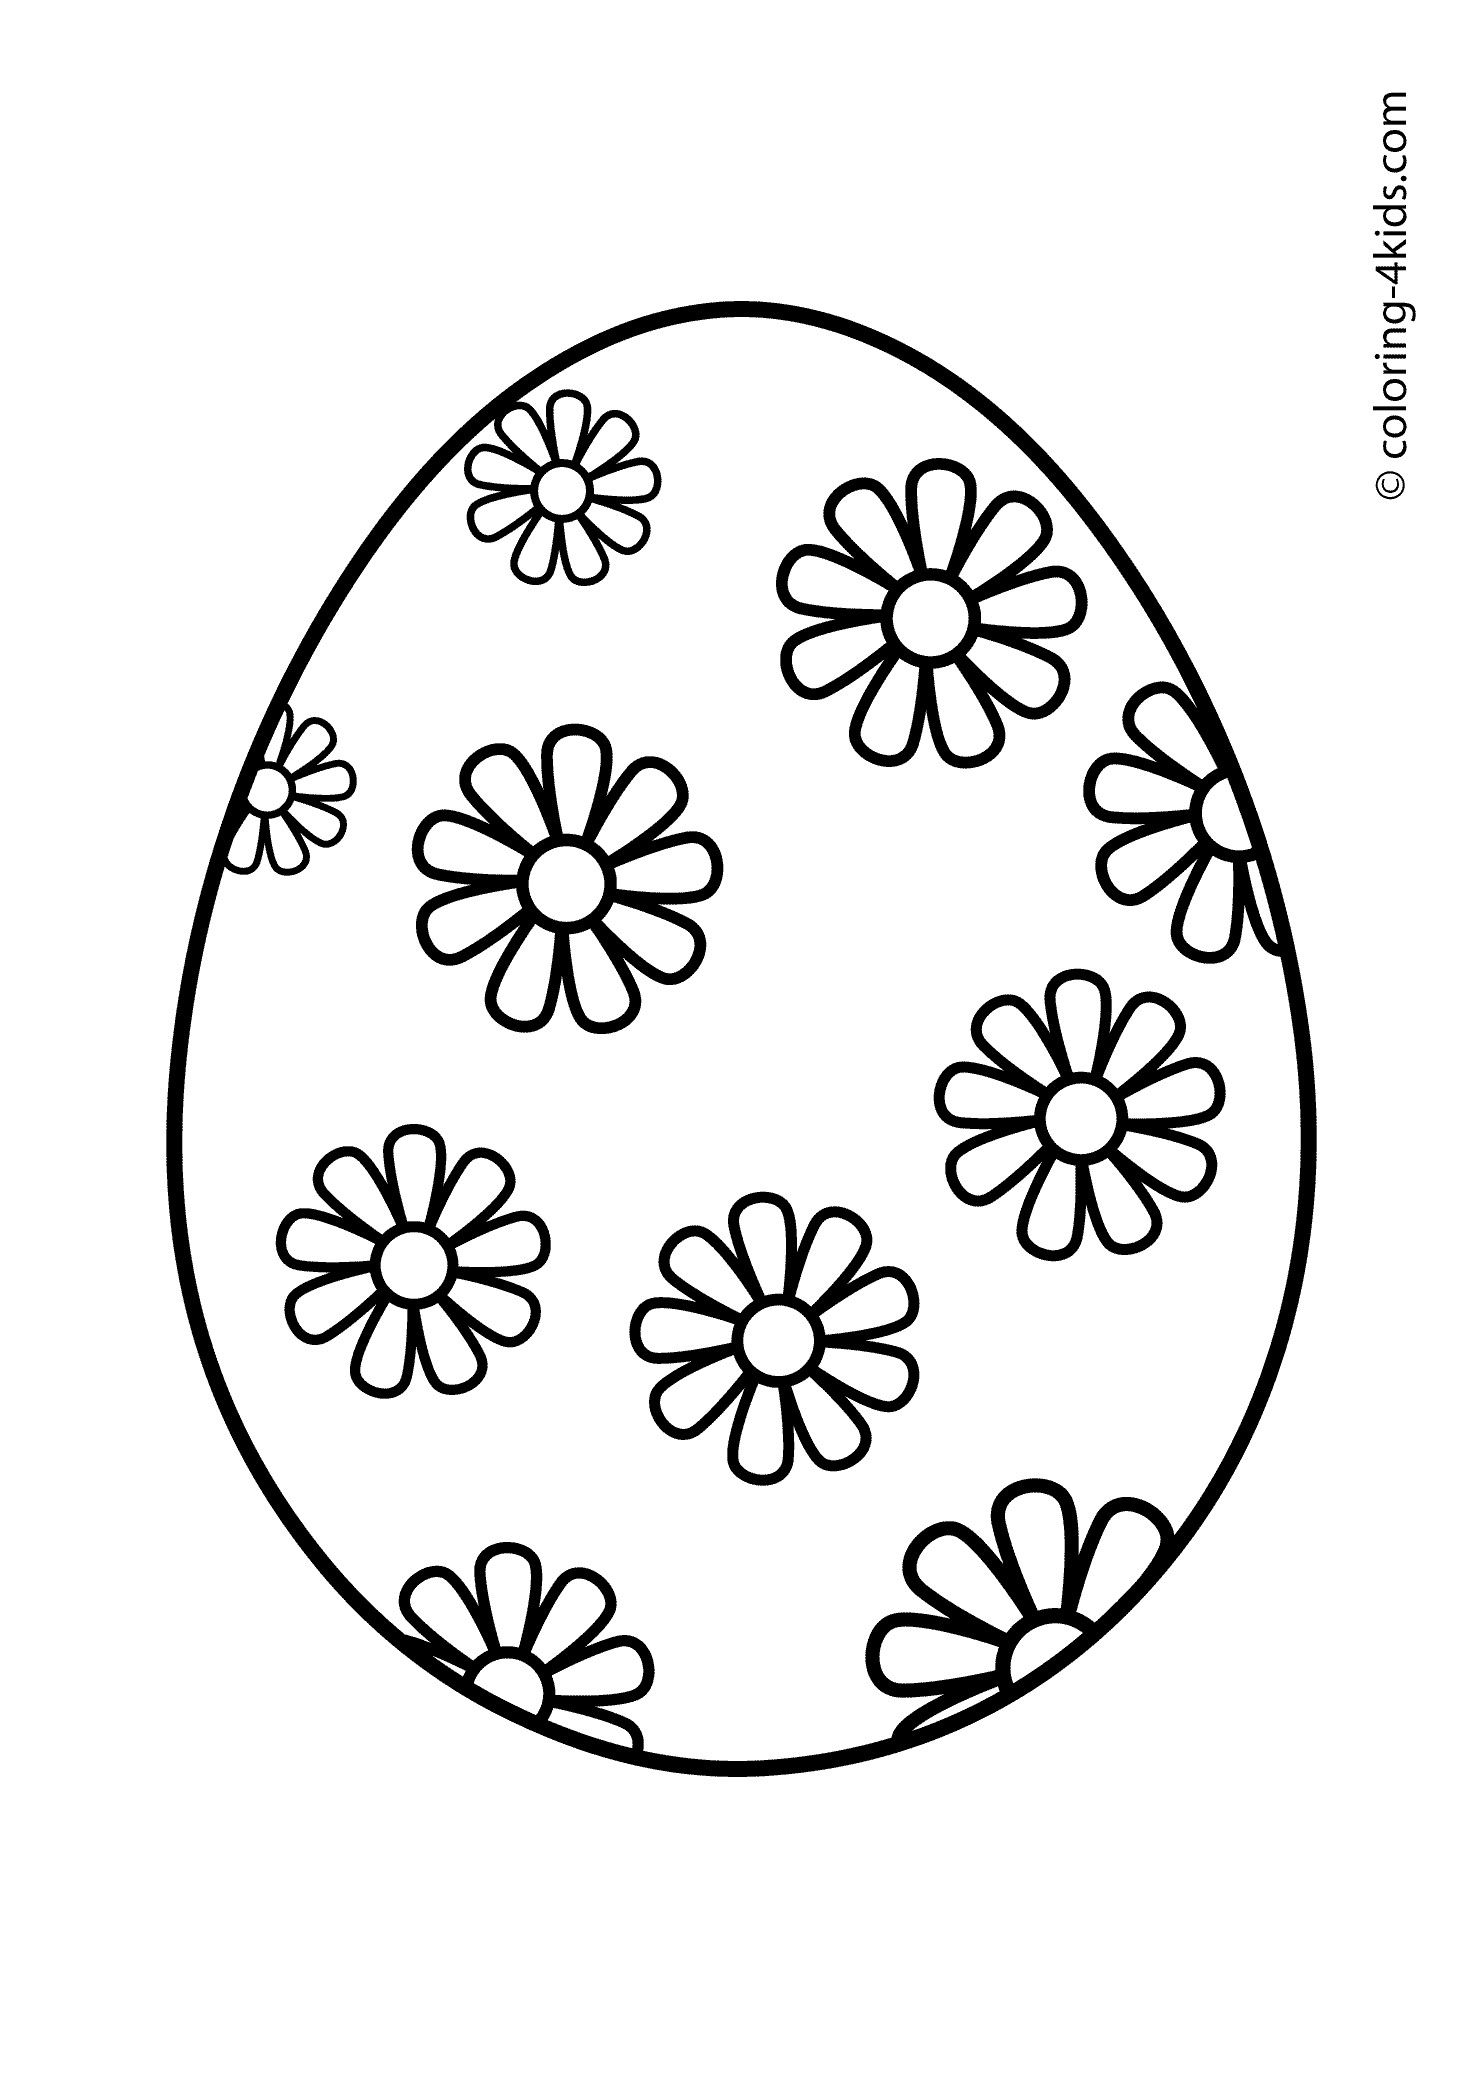 Easter Egg Coloring Page Butterfly Egg Coloring Page New ...